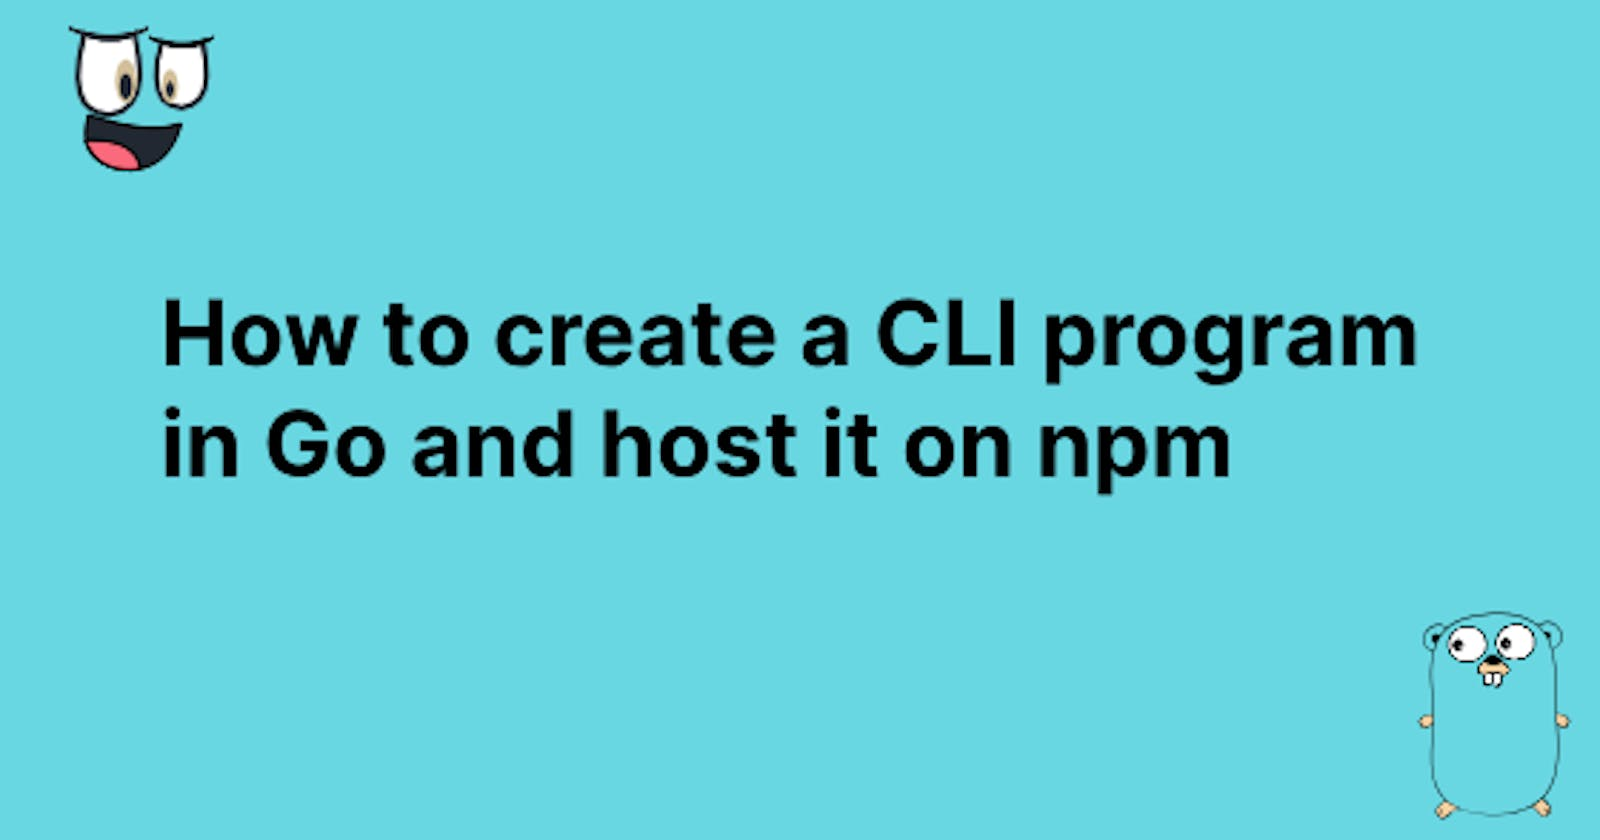 How to create a CLI program in Go and host it on npm